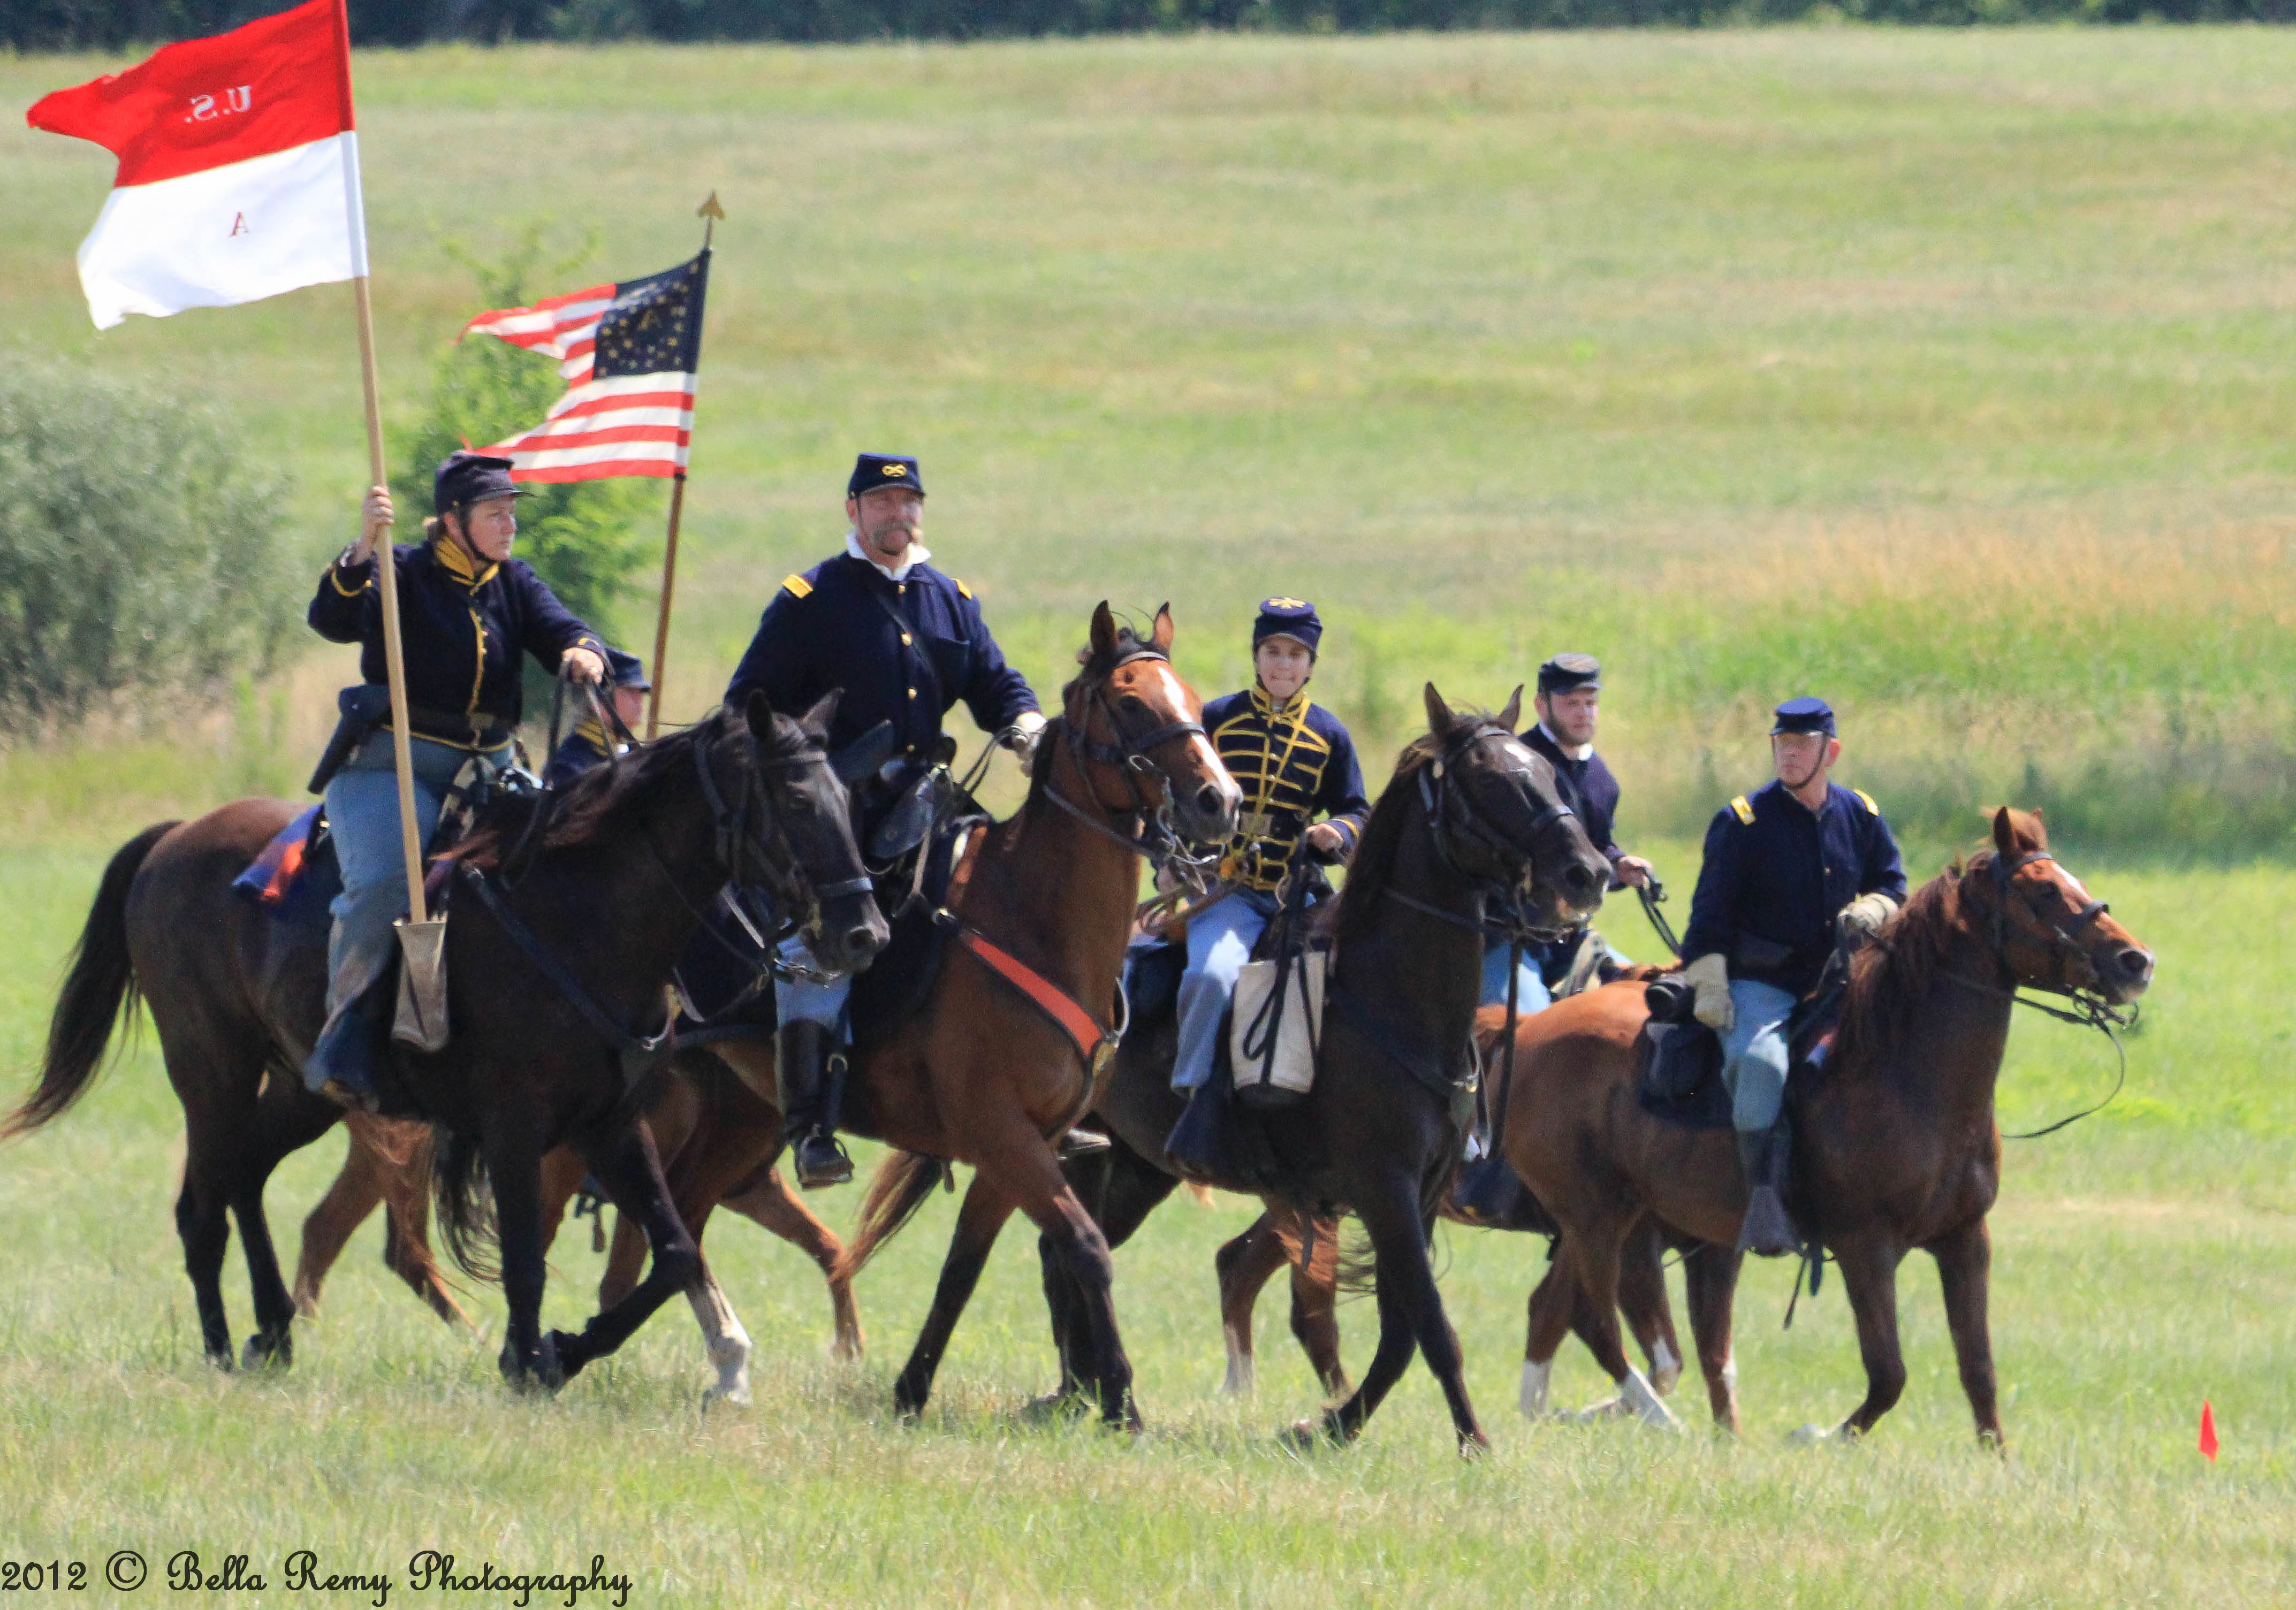 Gettysburg Civil War Reenactment Part Two: The Cavalry Skirmish